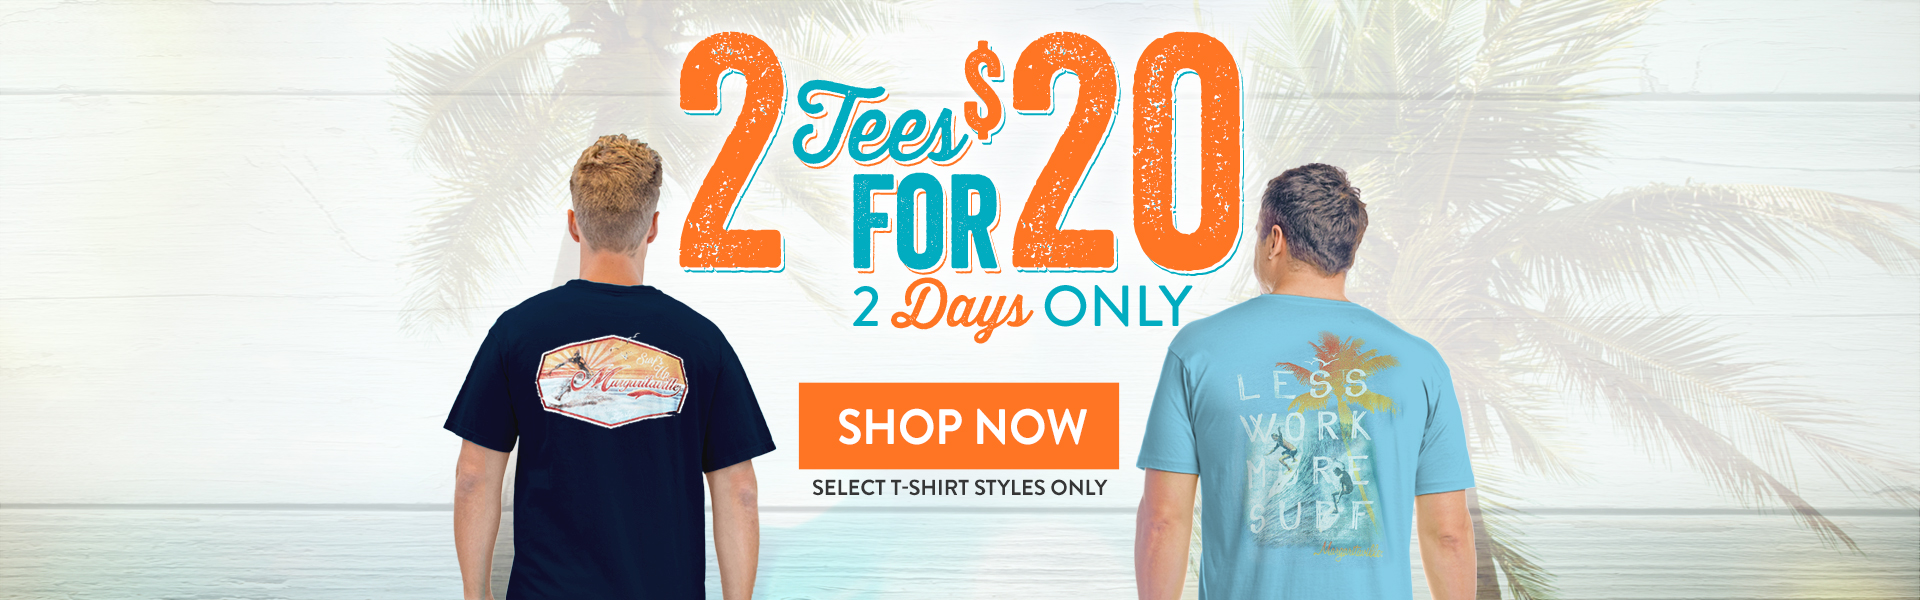 2 for $20 Tees